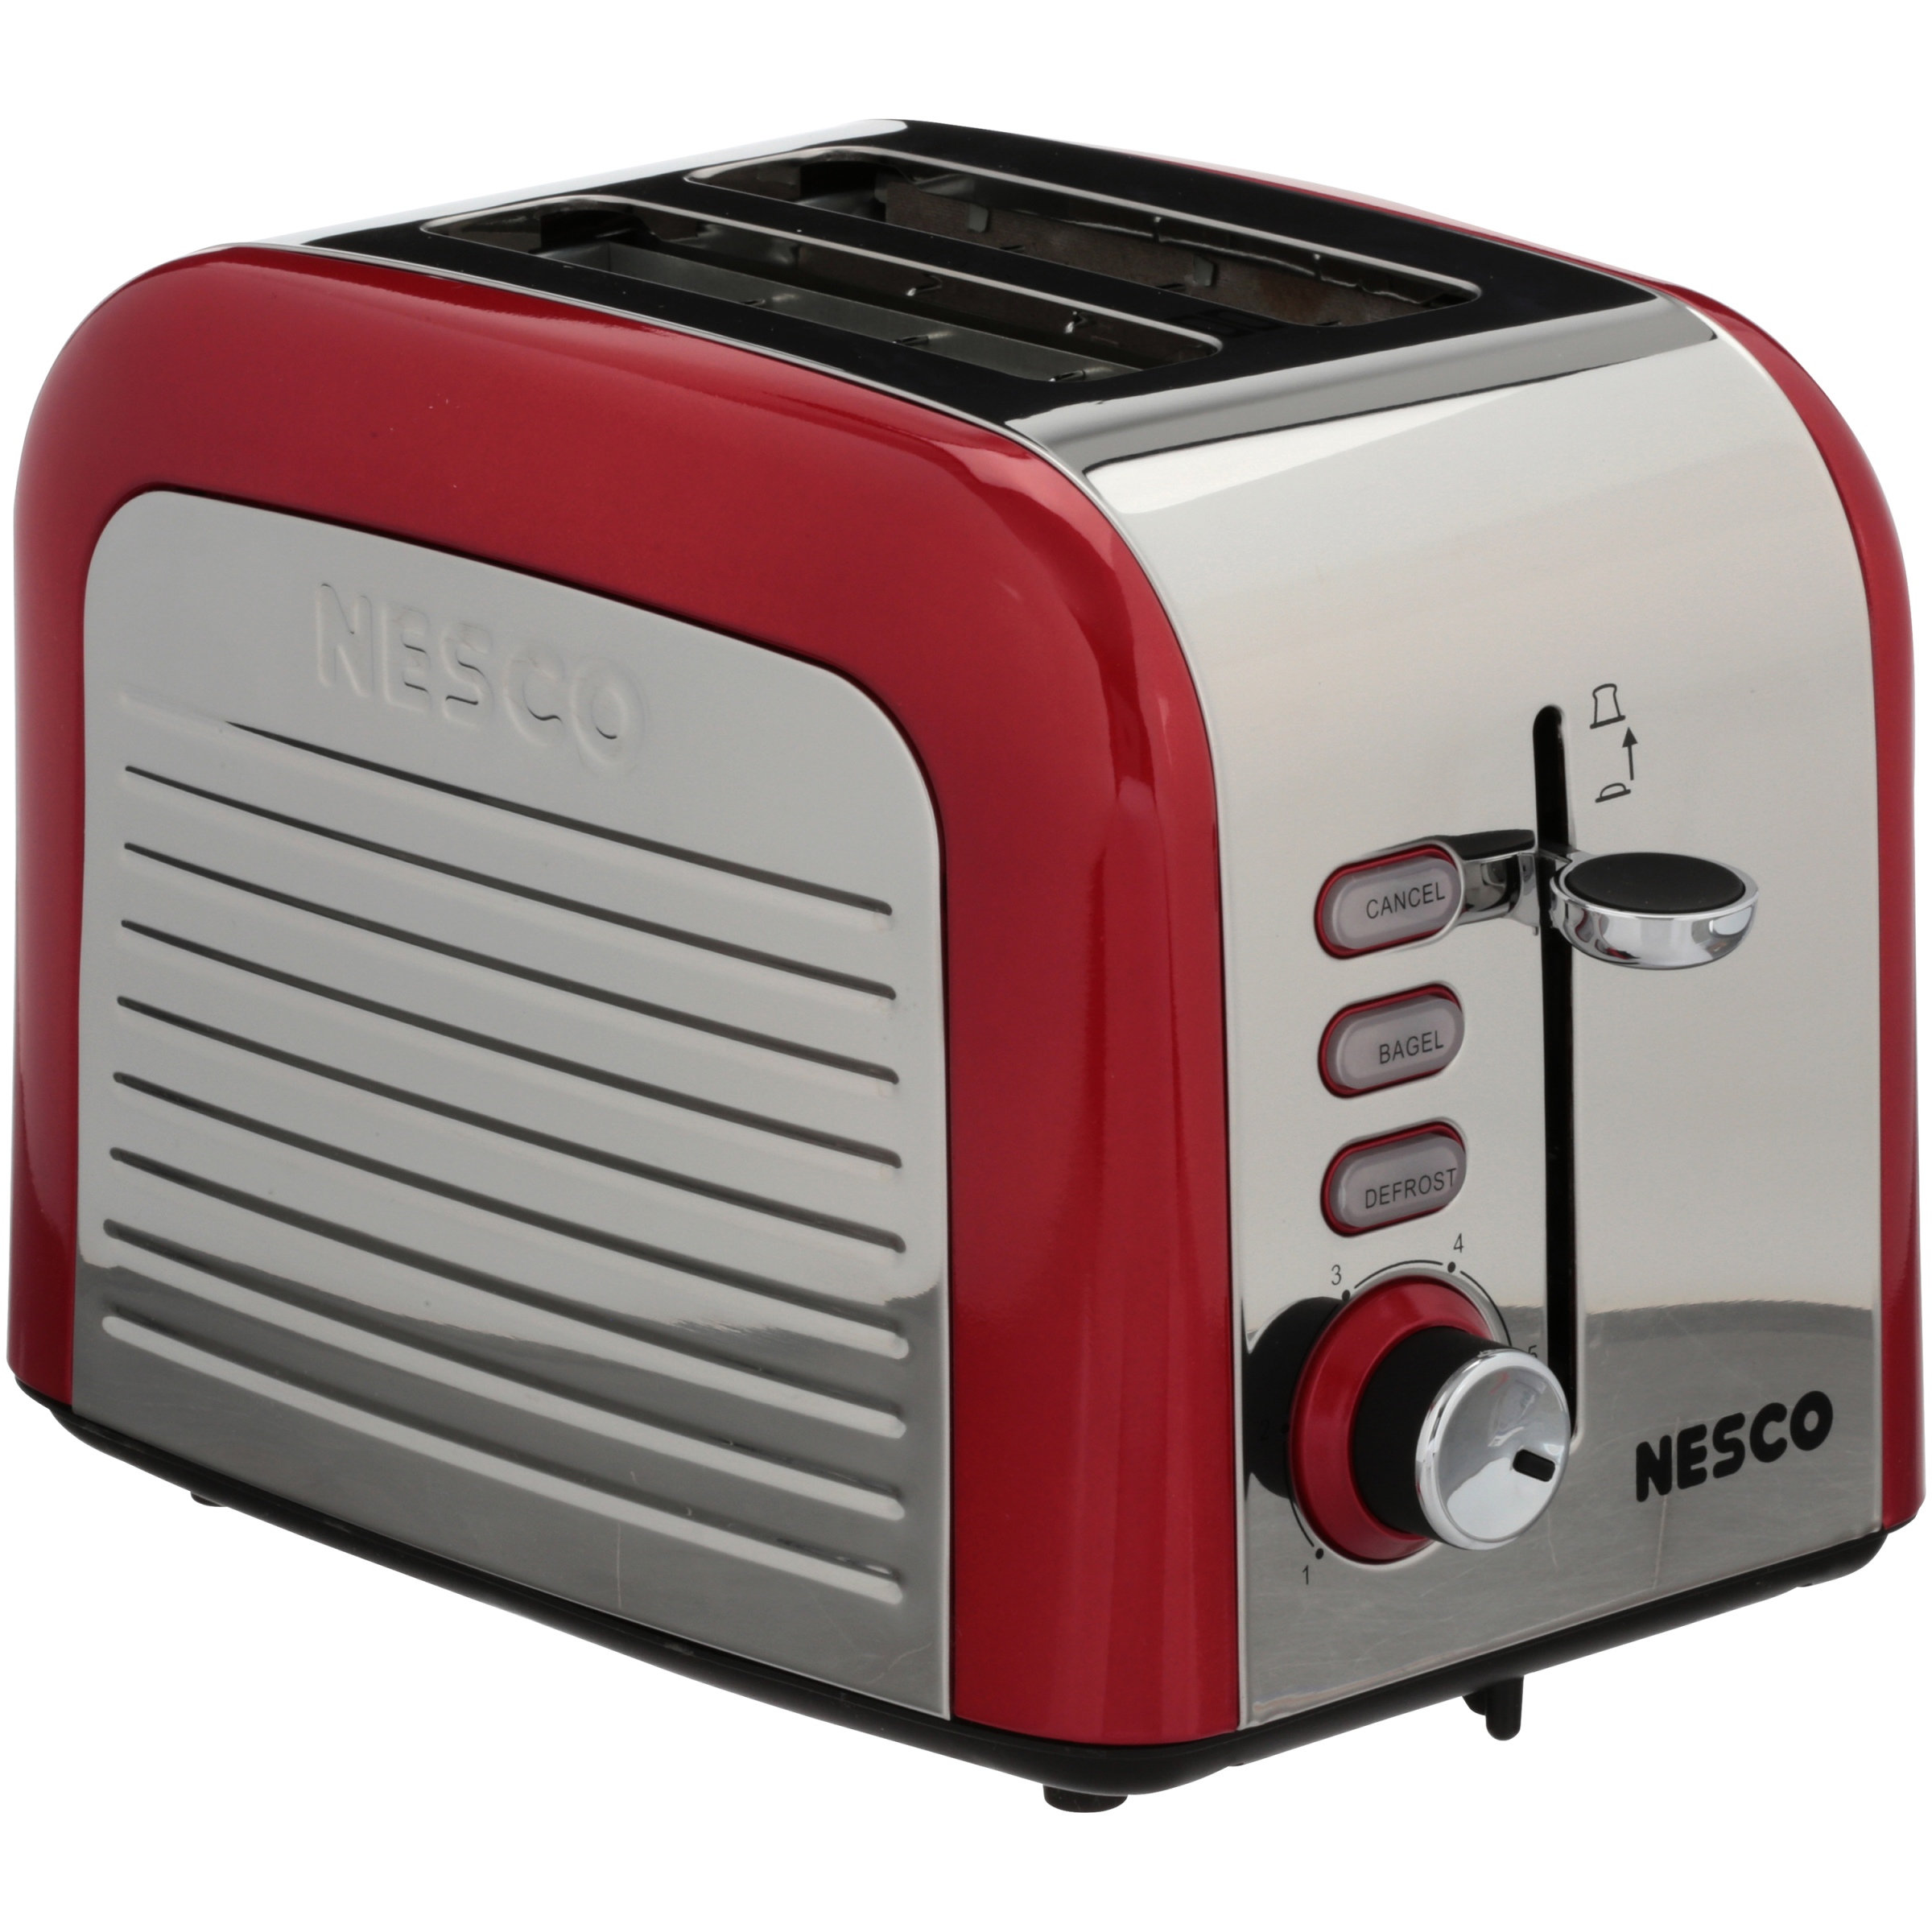 Nesco T1000-12 Everyday 2-Slice Toaster, Red/Chrome